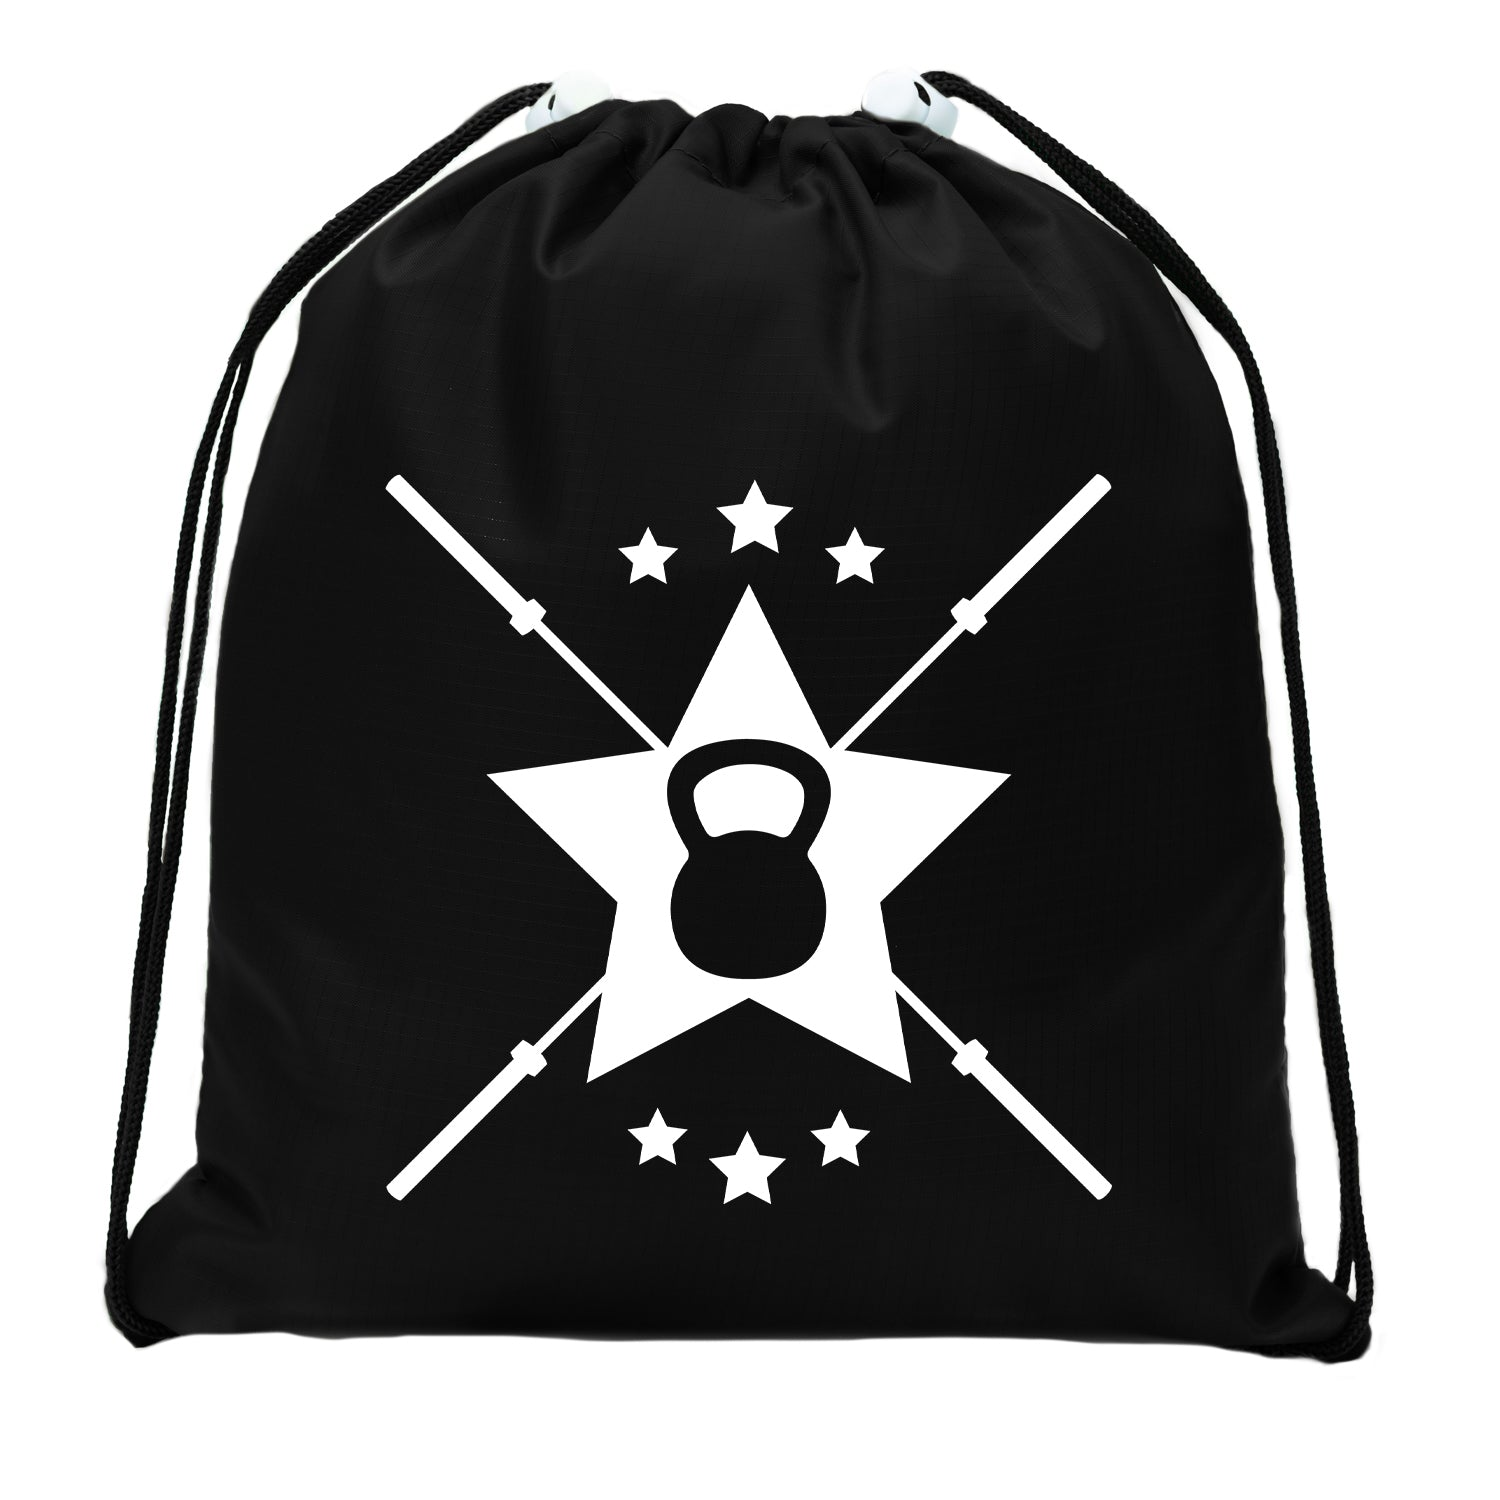 Accessory - Extreme Fitness Bags, Powerlifting Drawstring Backpacks, Mini Gym Cinch Sacks - Emblem